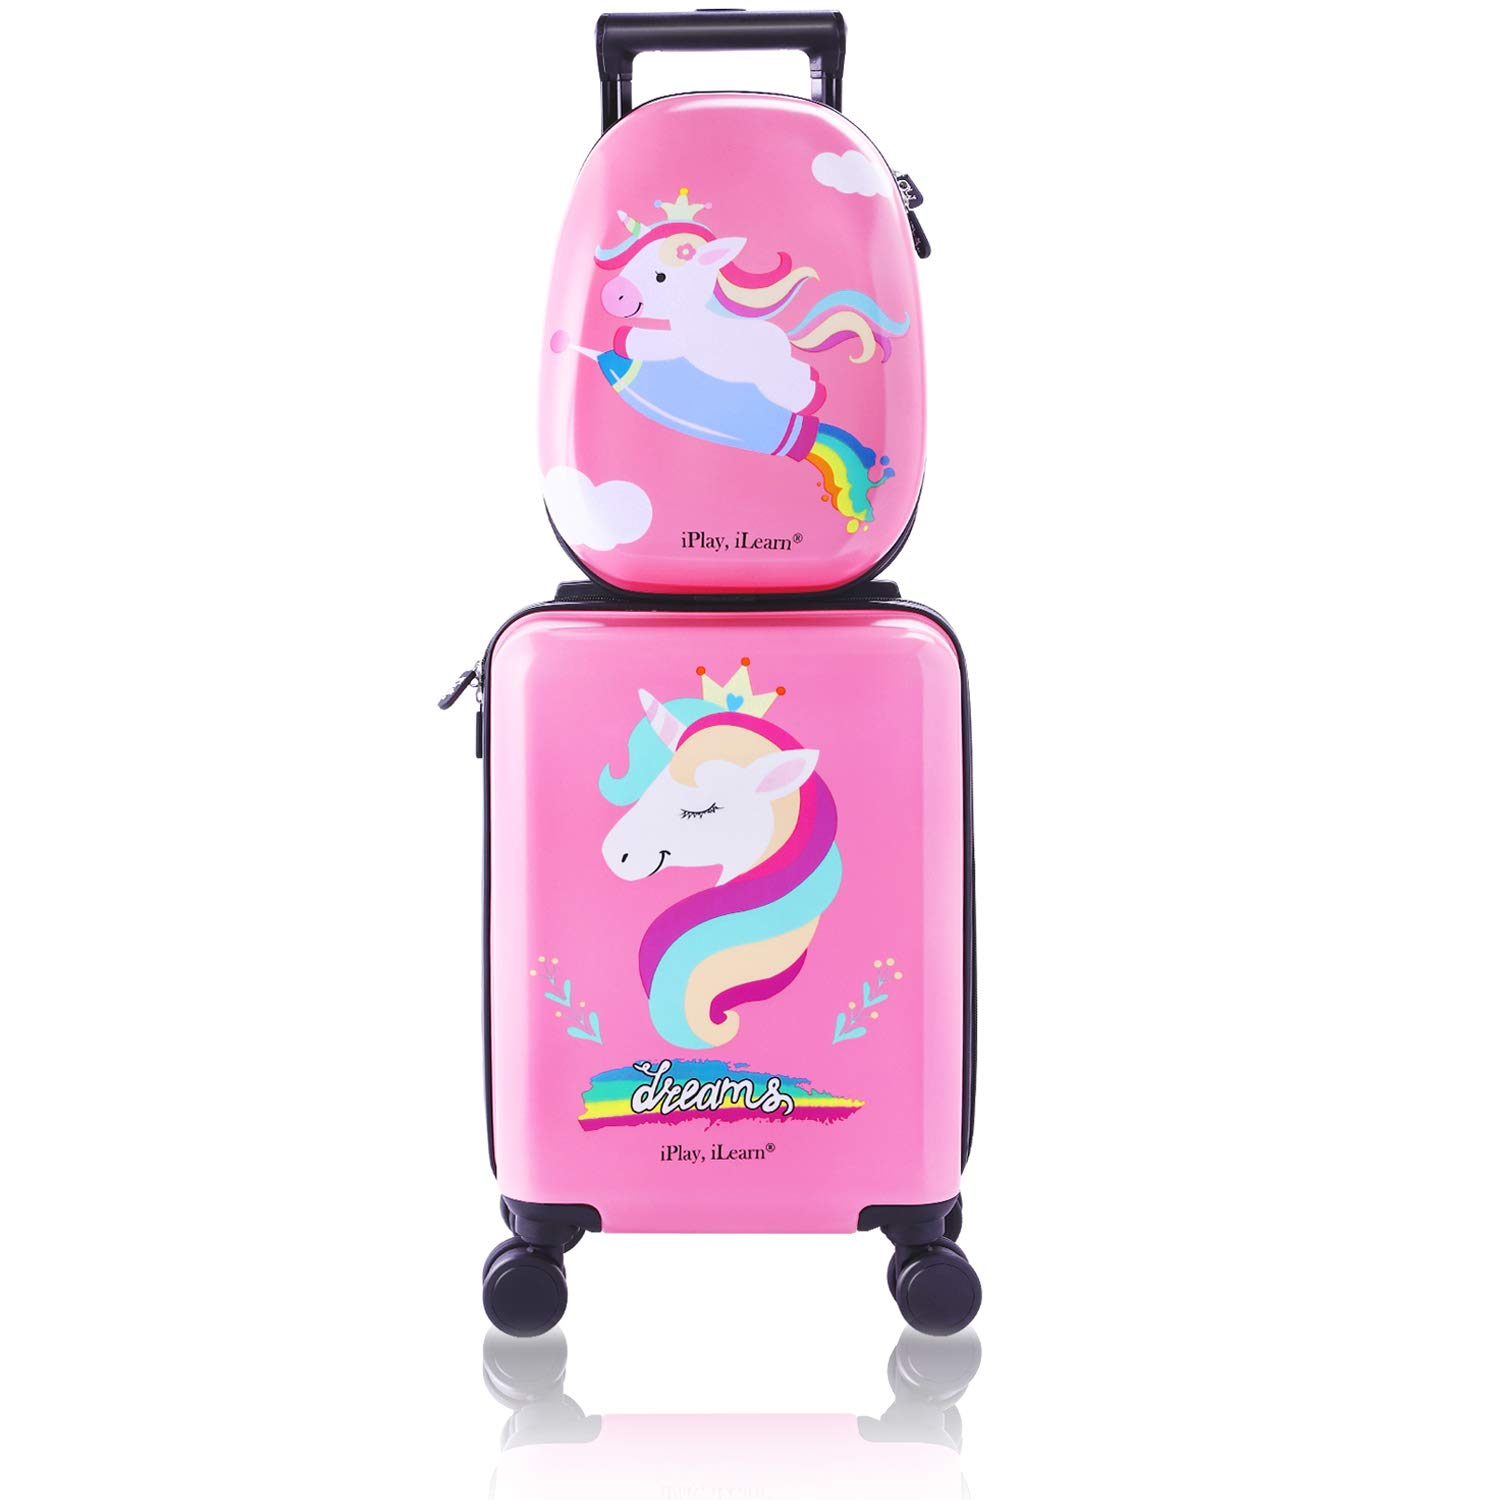 Unicorn Kids Carry on Luggage Set with Spinner Wheels, Girls Travel Suitcase by iPlay, iLearn